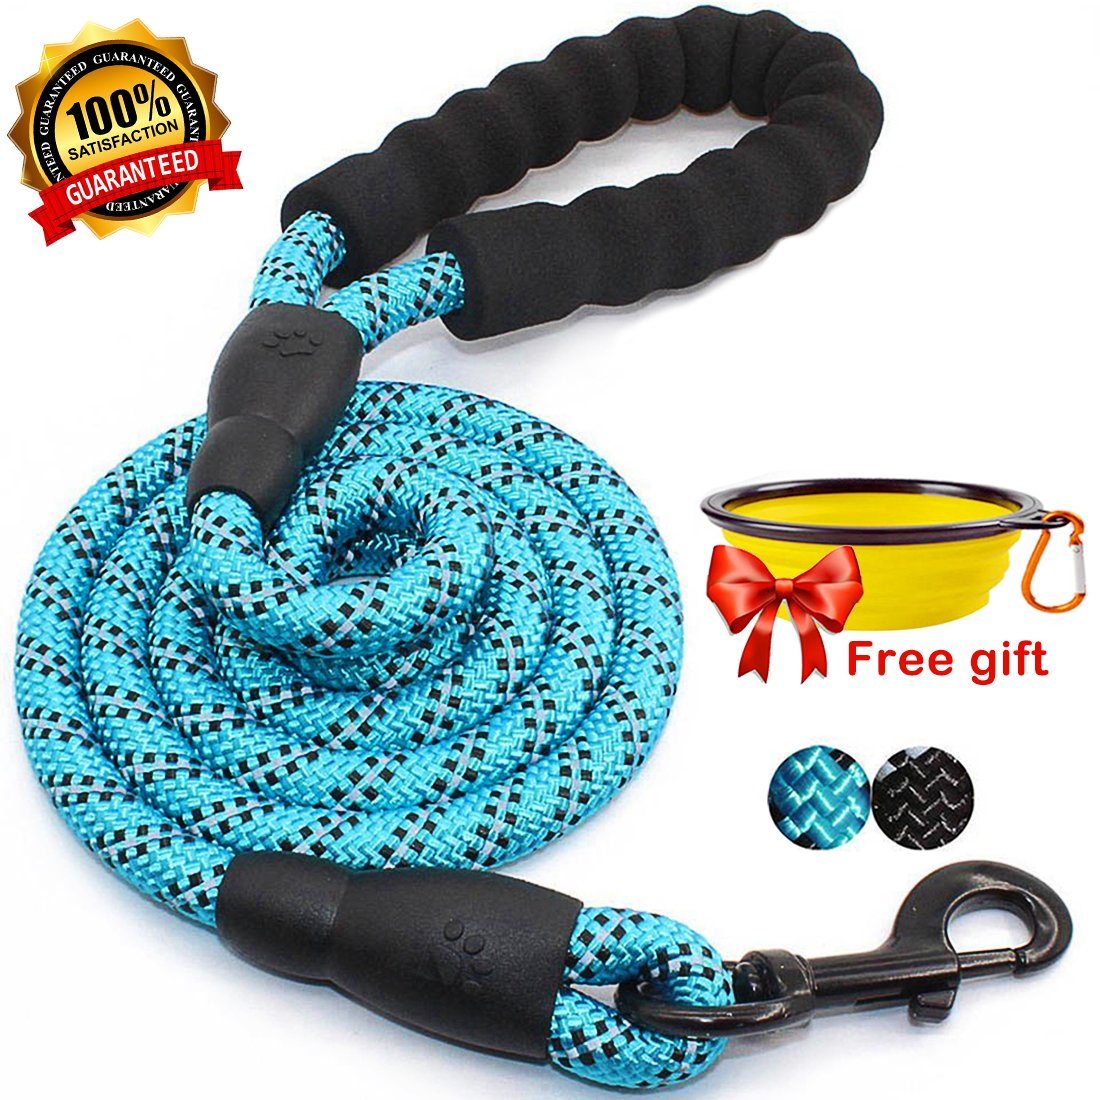 bluee fanson 5ft Reflective Rope Dog Leash for Night Safety Pet Supplies for Medium or Big Dogs   Heavy Duty String for Walking, Hiking, Running, Training, Eco-Friendly, Durable, Stress-Free (bluee)